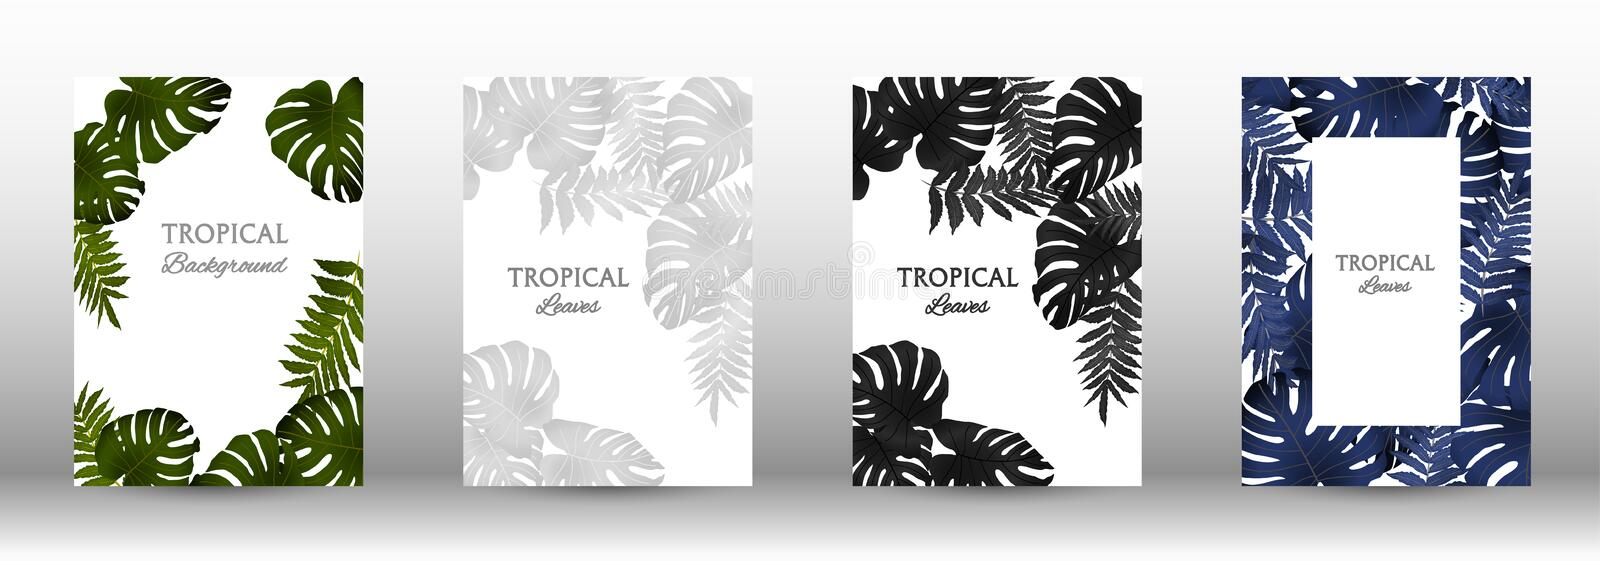 A set of tropic. Tropic covers set.  Tropical leaves banners background. Summer graphic background. Modern Front Page in Vector vector illustration